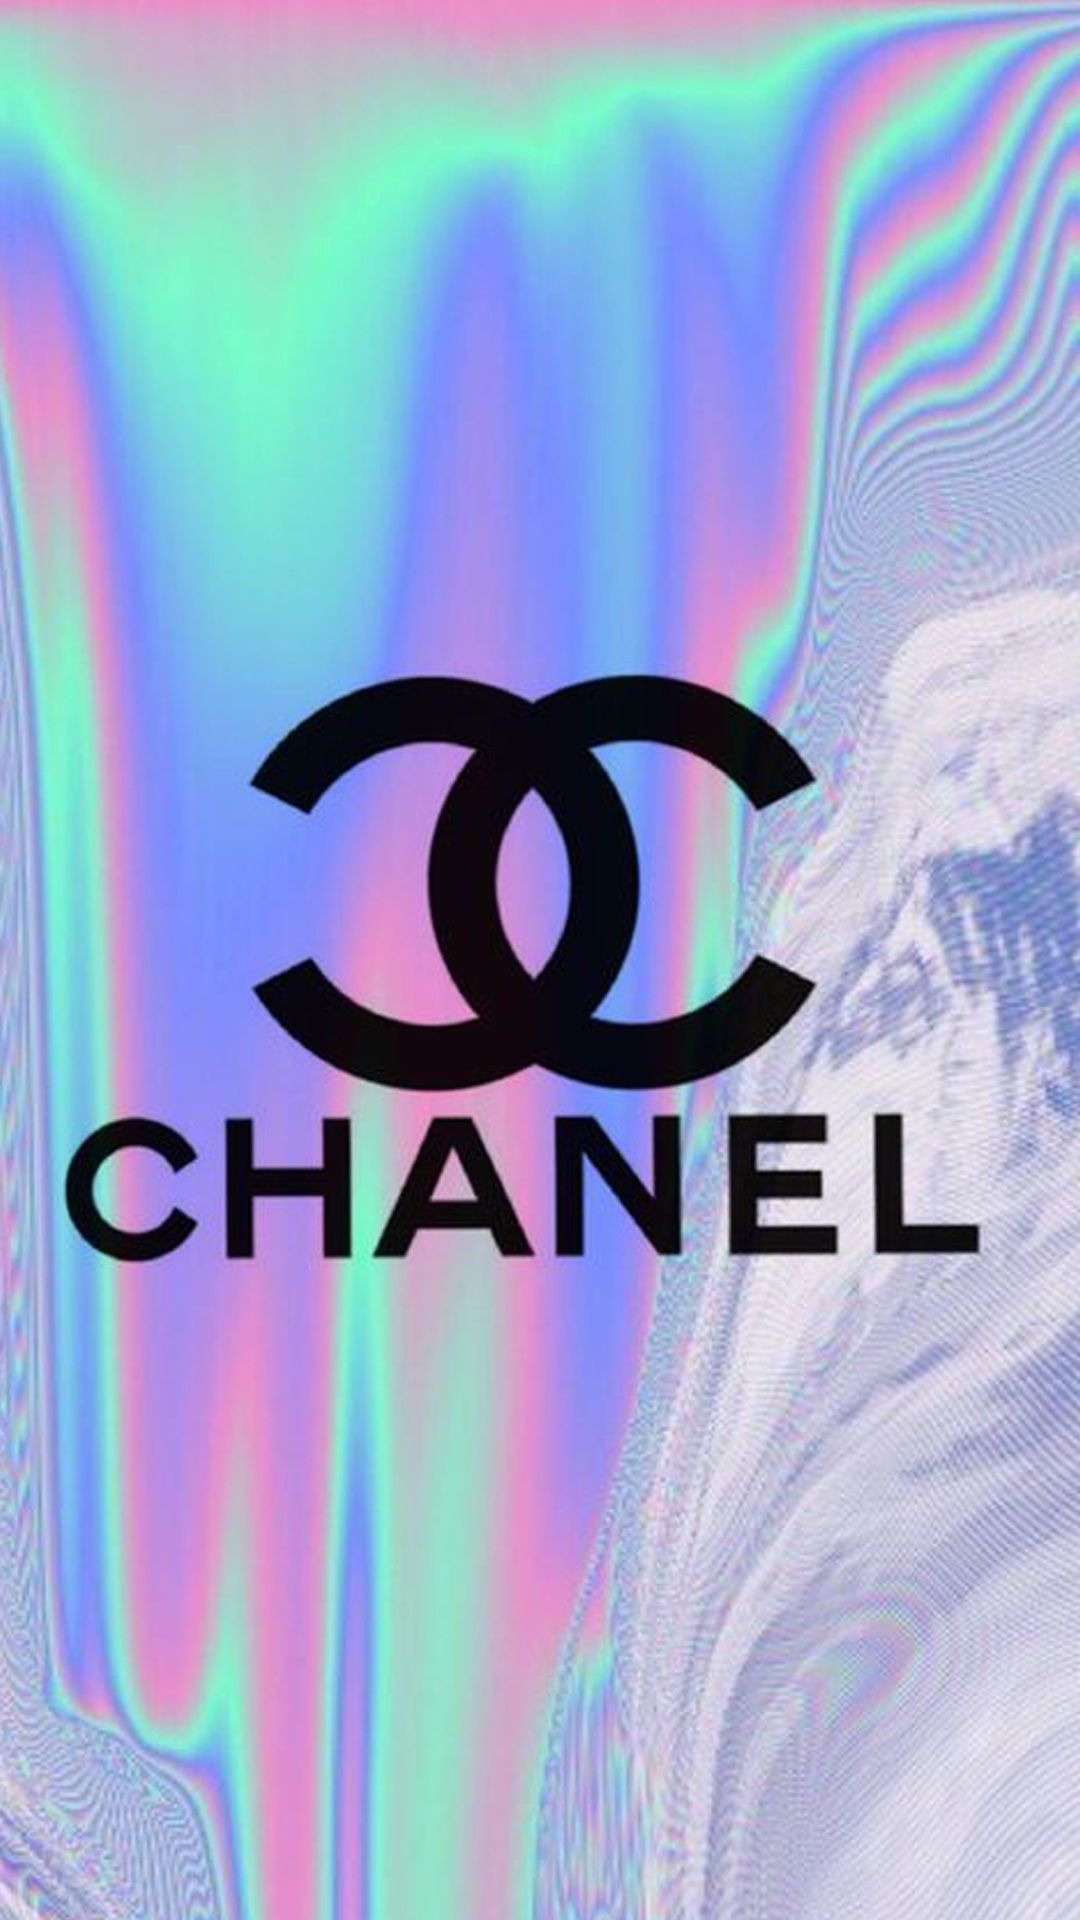 Girly Chanel Iphone Wallpaper Wallpapers For Iphone